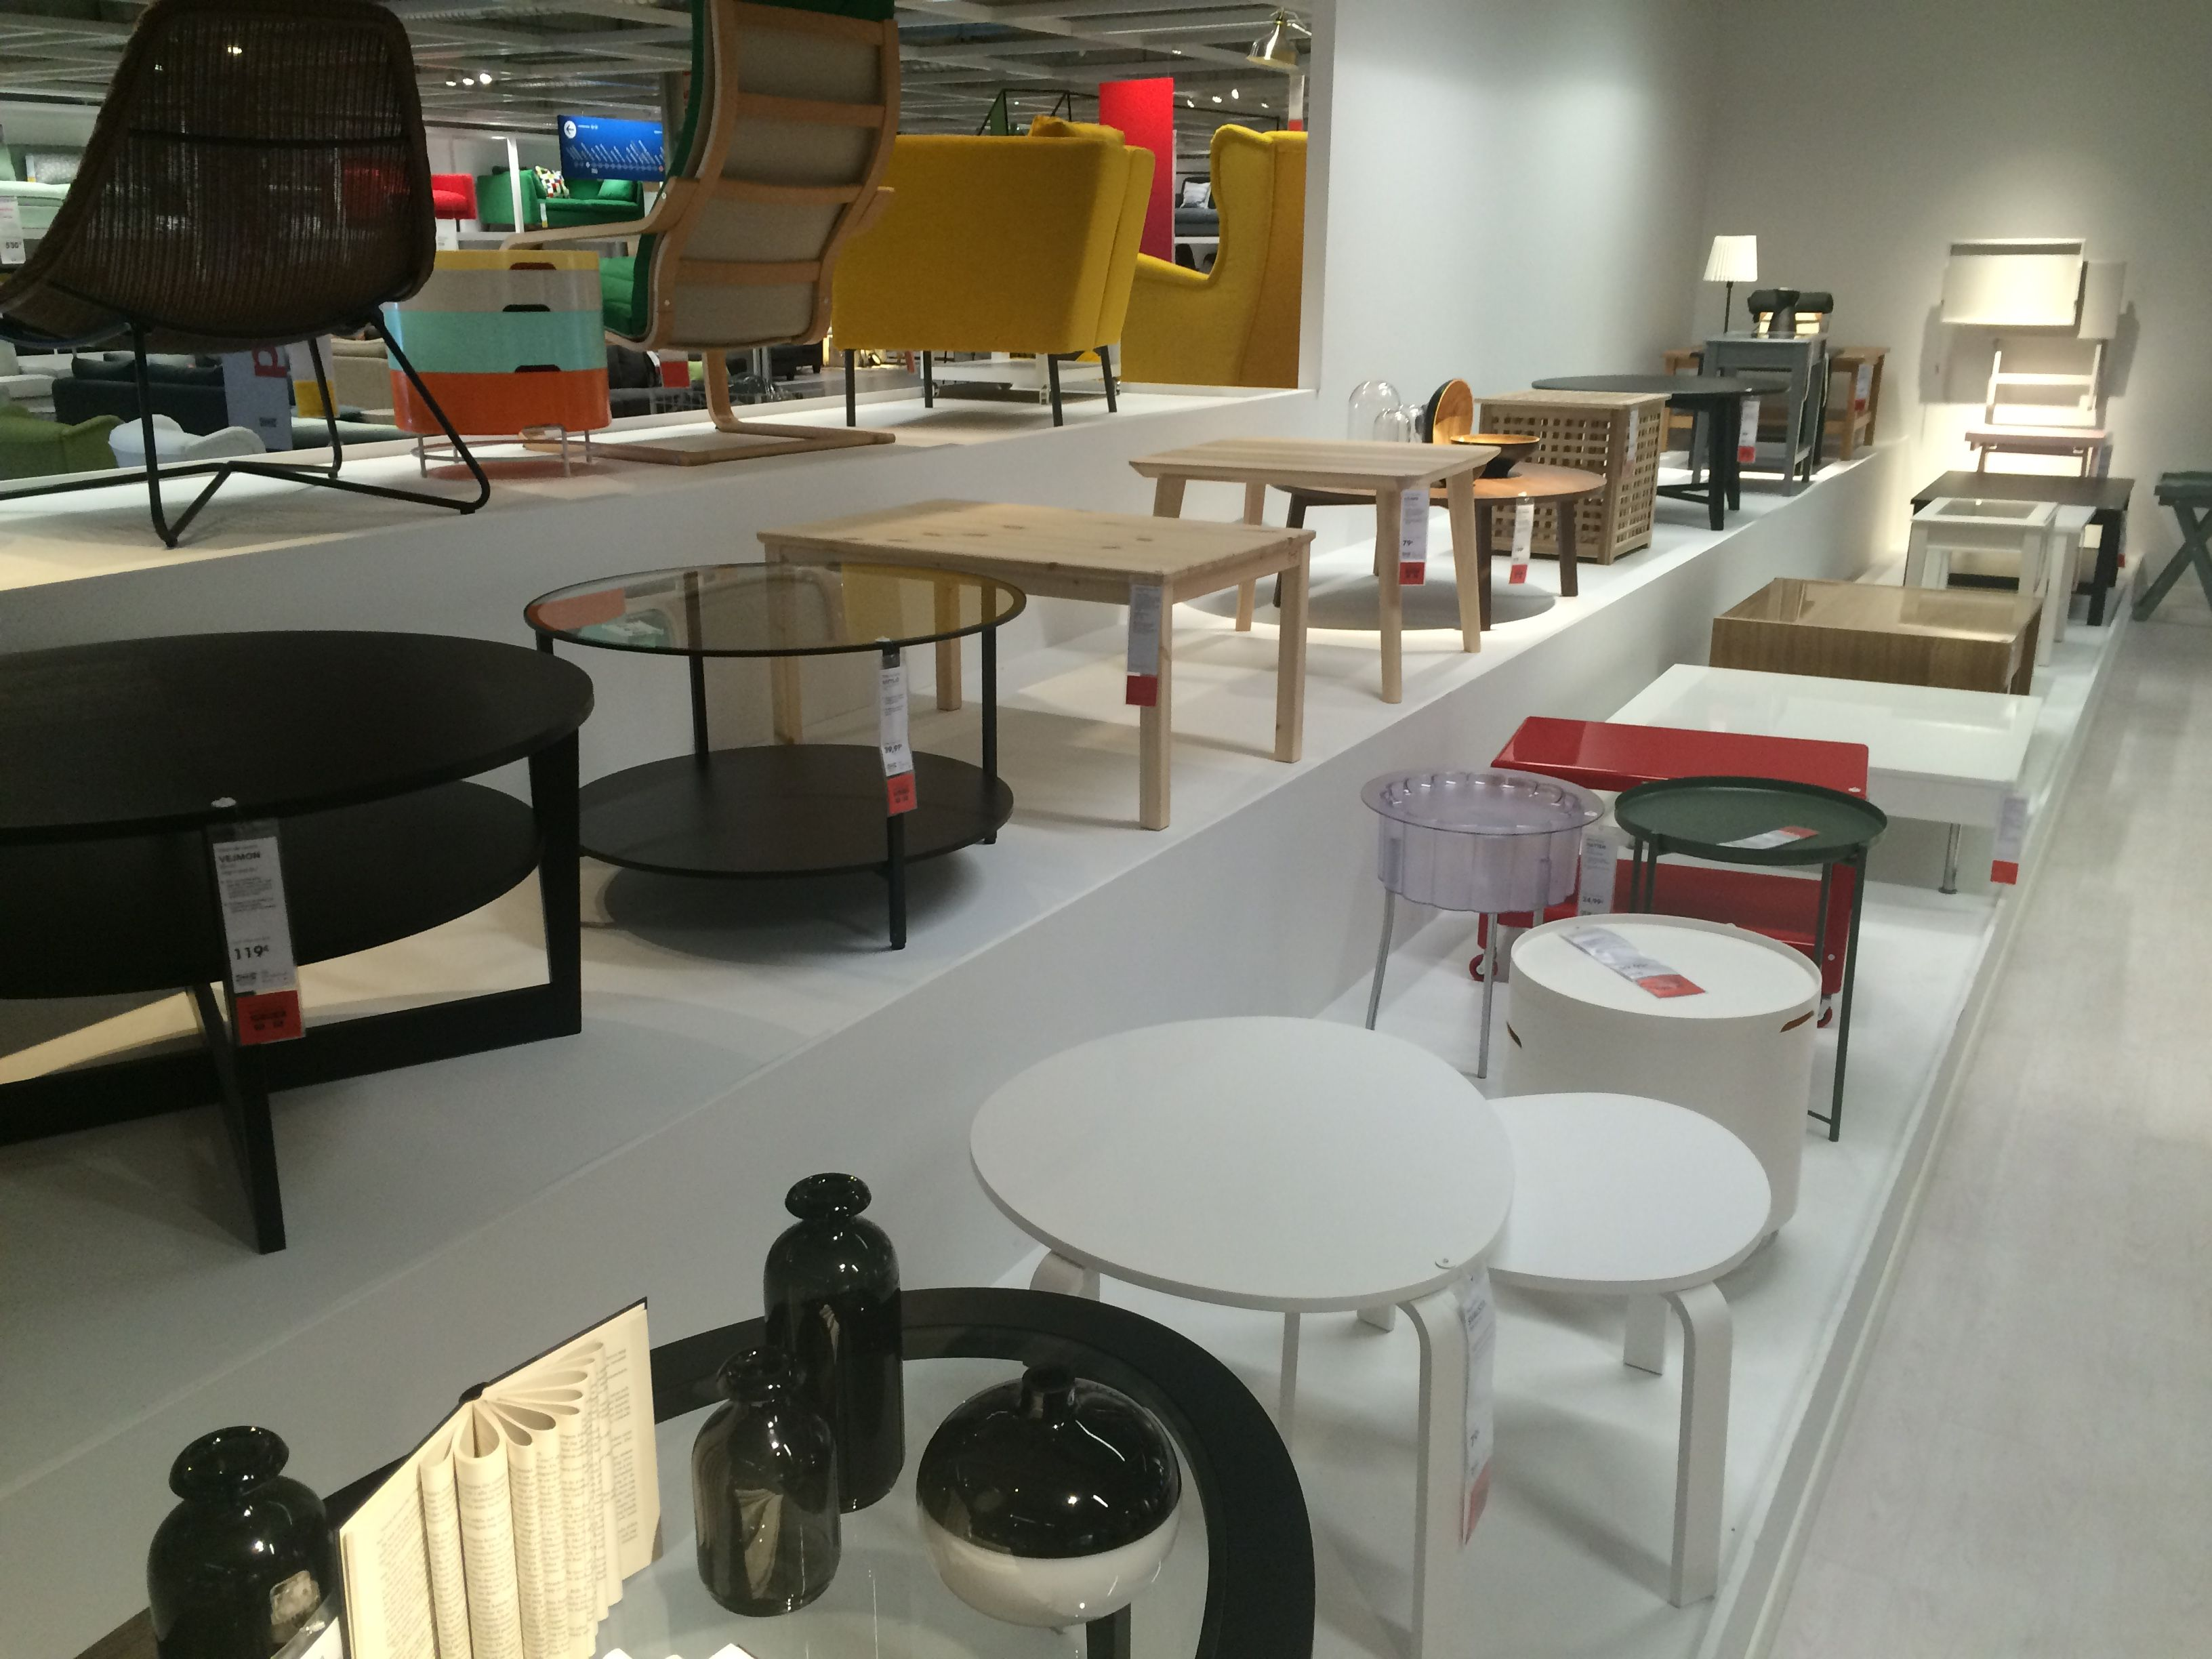 Ikea Alcorcon Madrid Coffee Table Overview [ 2448 x 3264 Pixel ]